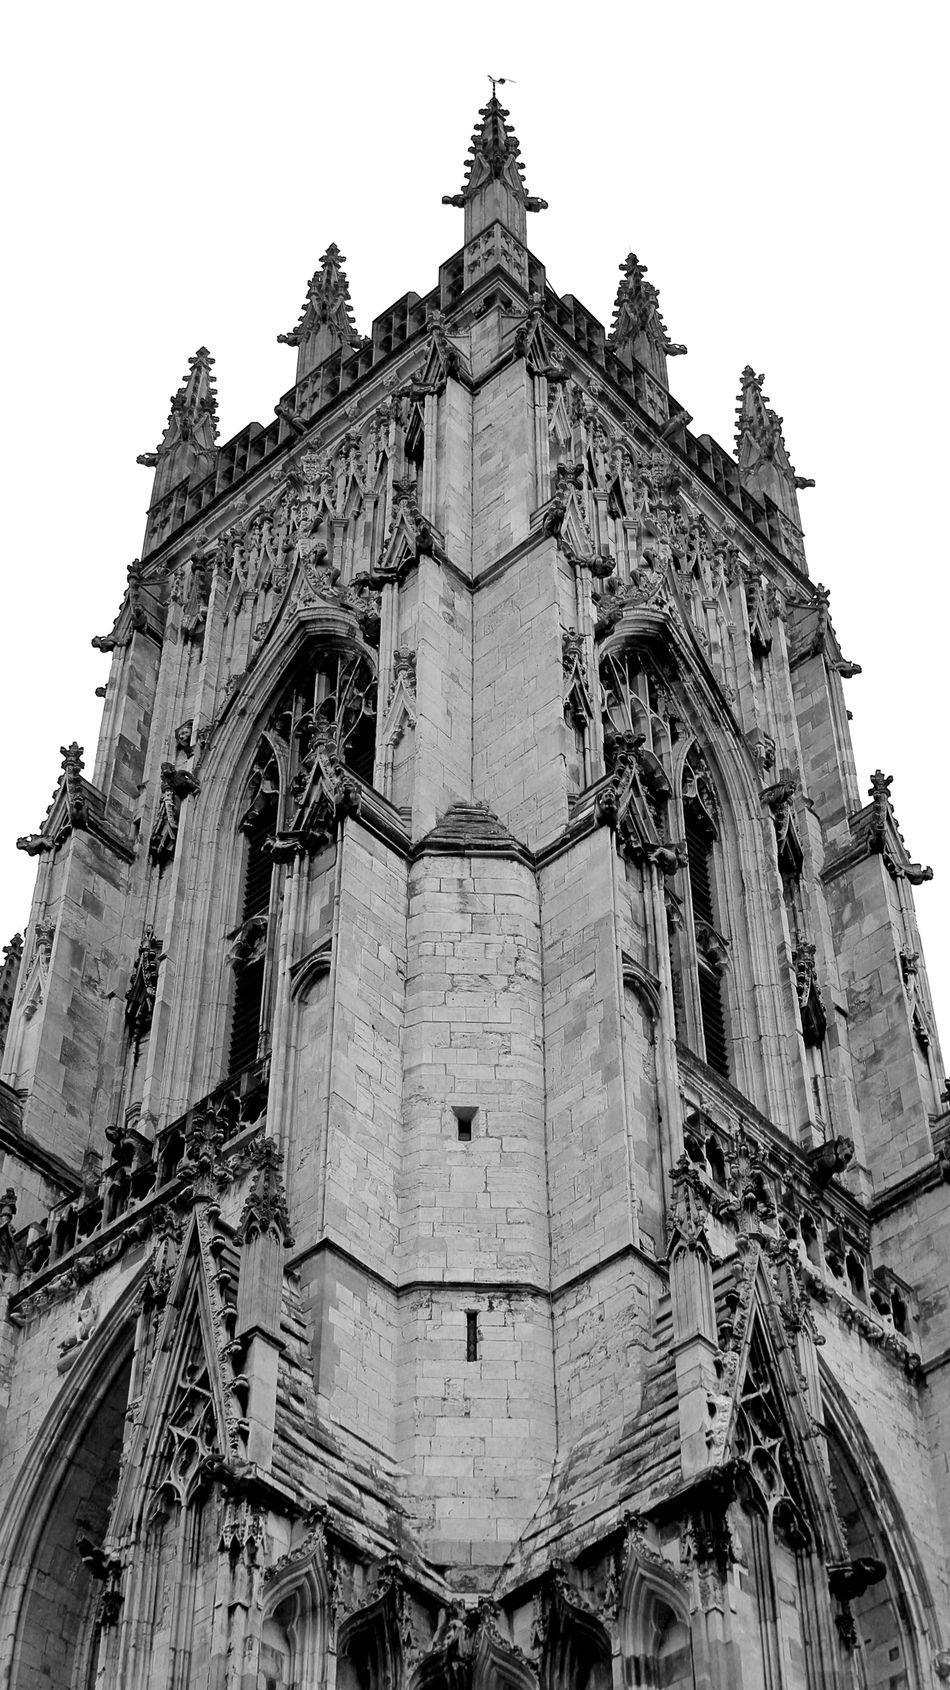 Anglo-saxon Architecture Building Exterior Cathedral Gothic Architecture Gothic Style History Low Angle View Medieval Architecture Place Of Worship Religion Spirituality Travel Destinations York